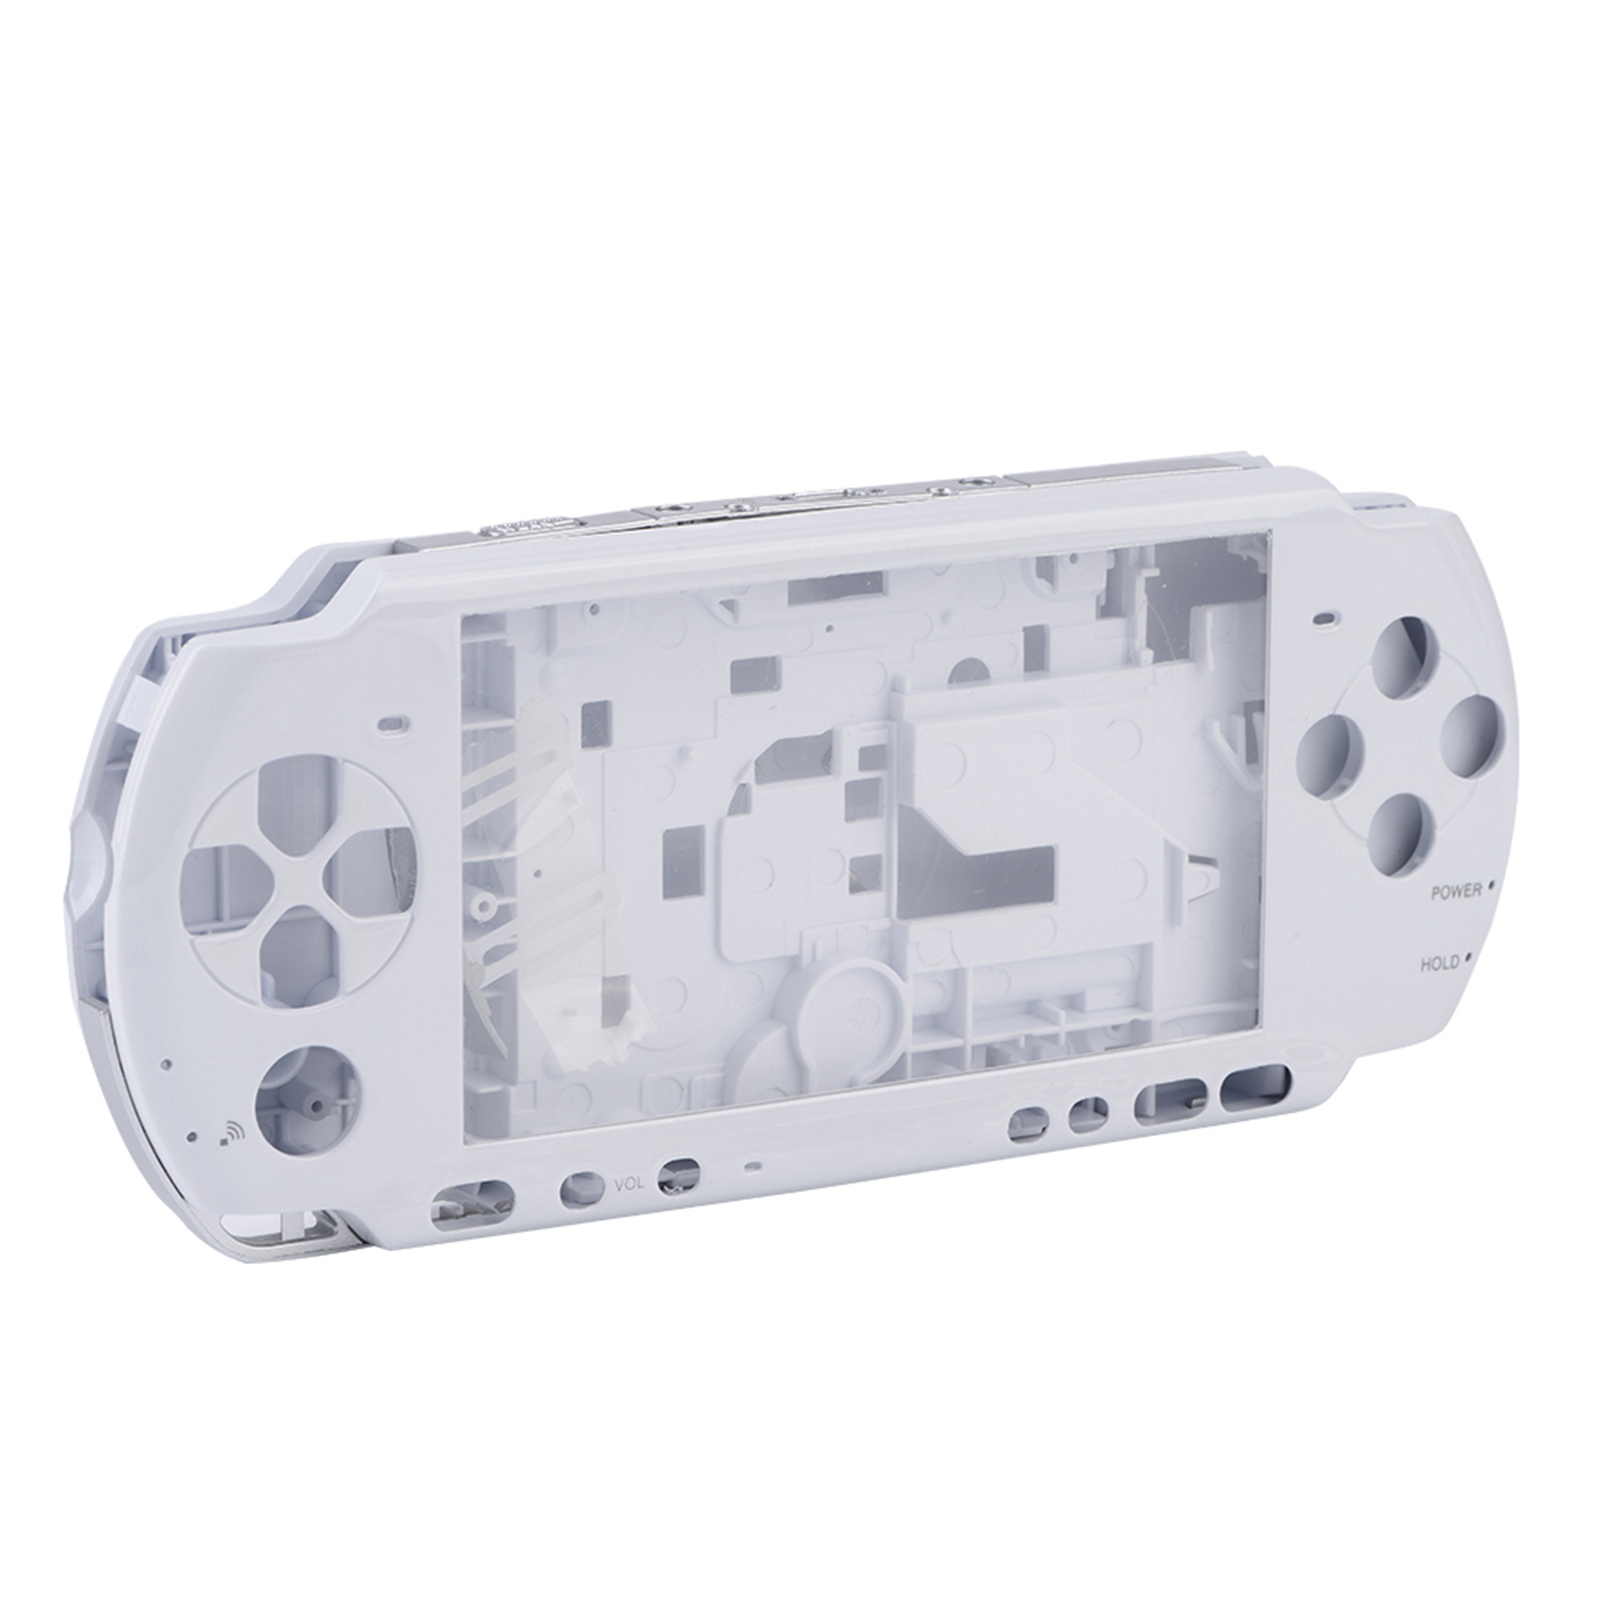 Full-Housing-Shell-Case-Cover-Faceplate-Set-Repair-Part-for-PSP-3000-Slim-Series thumbnail 15